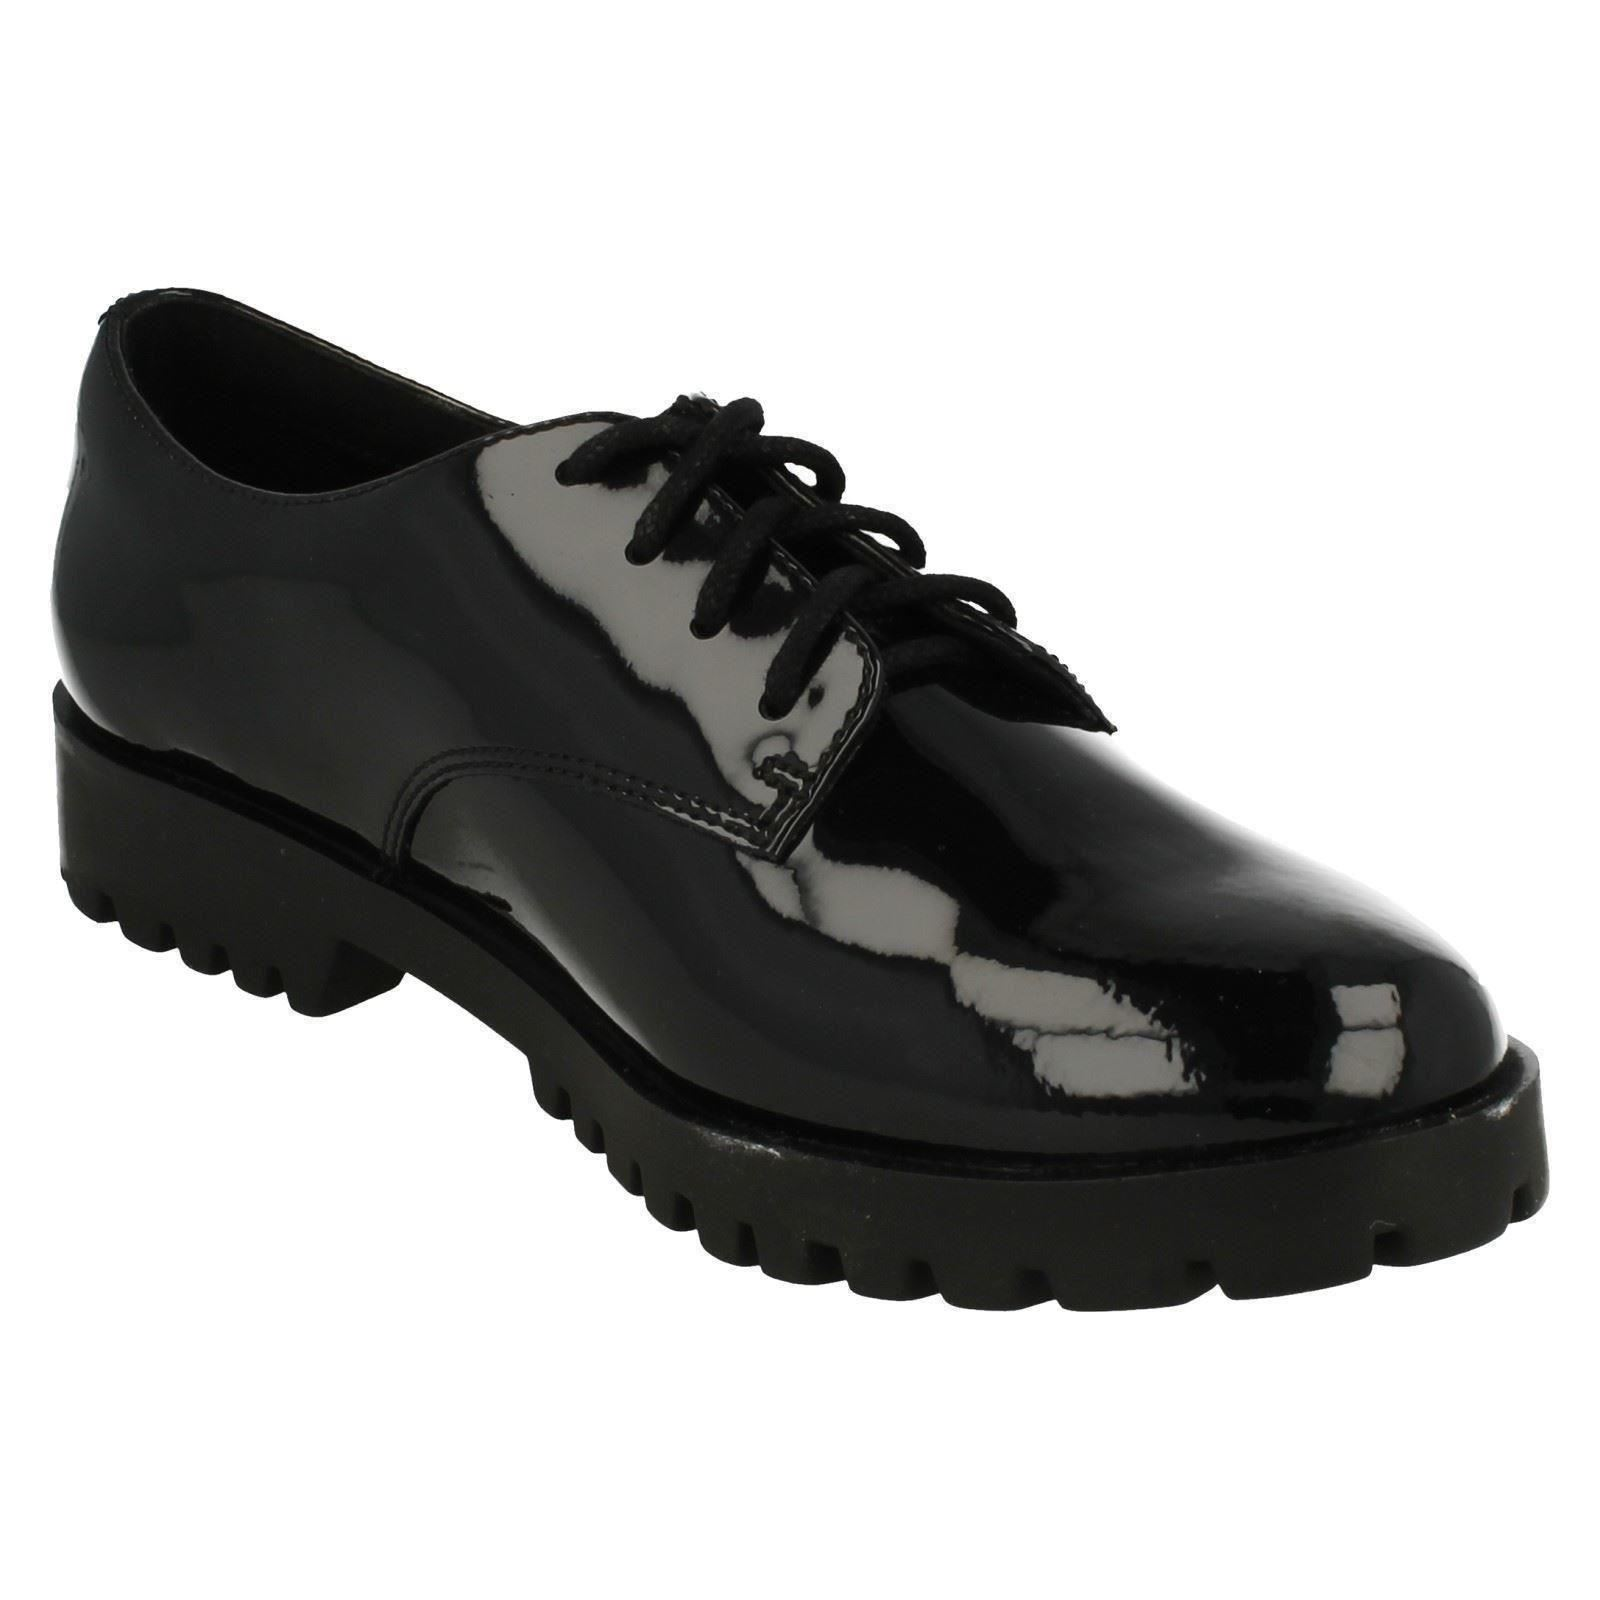 Bootleg By Clarks Chaussures Agnes May Scolaires Filles rrp7qS